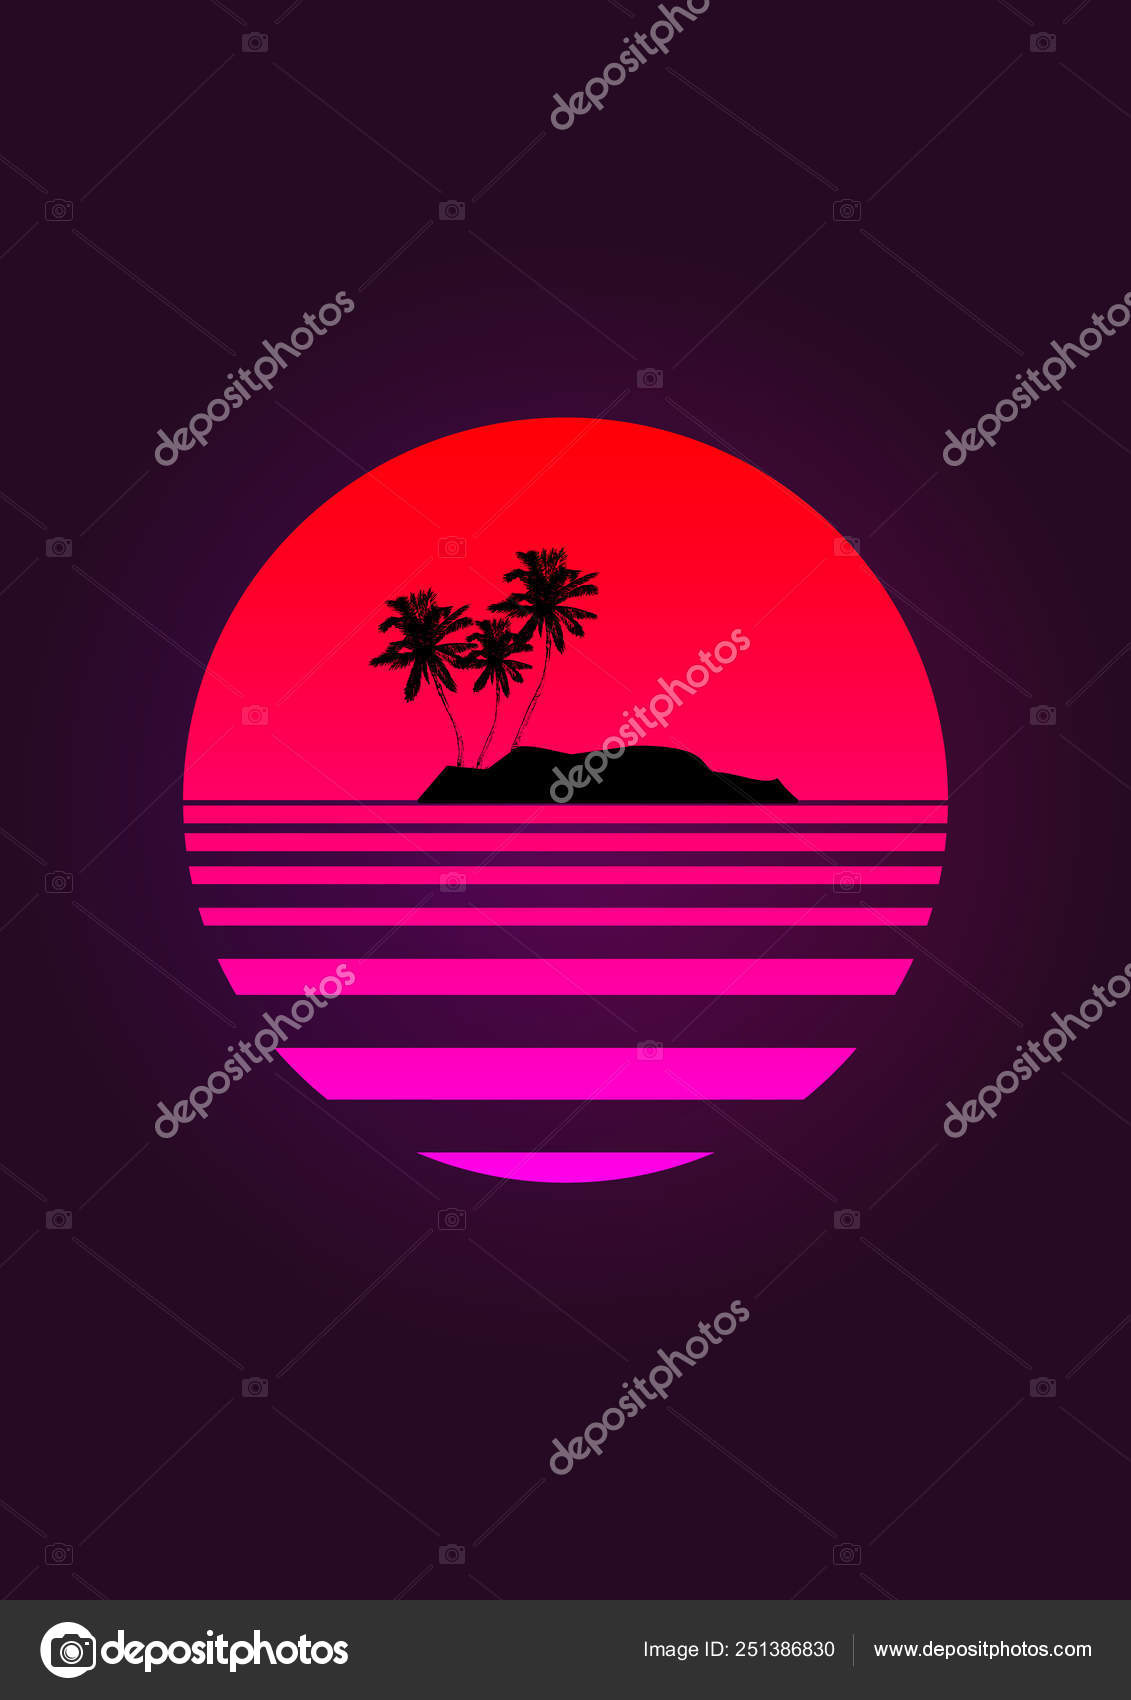 Silhouette Coconut Palm Trees On A Gradient Background Sunset